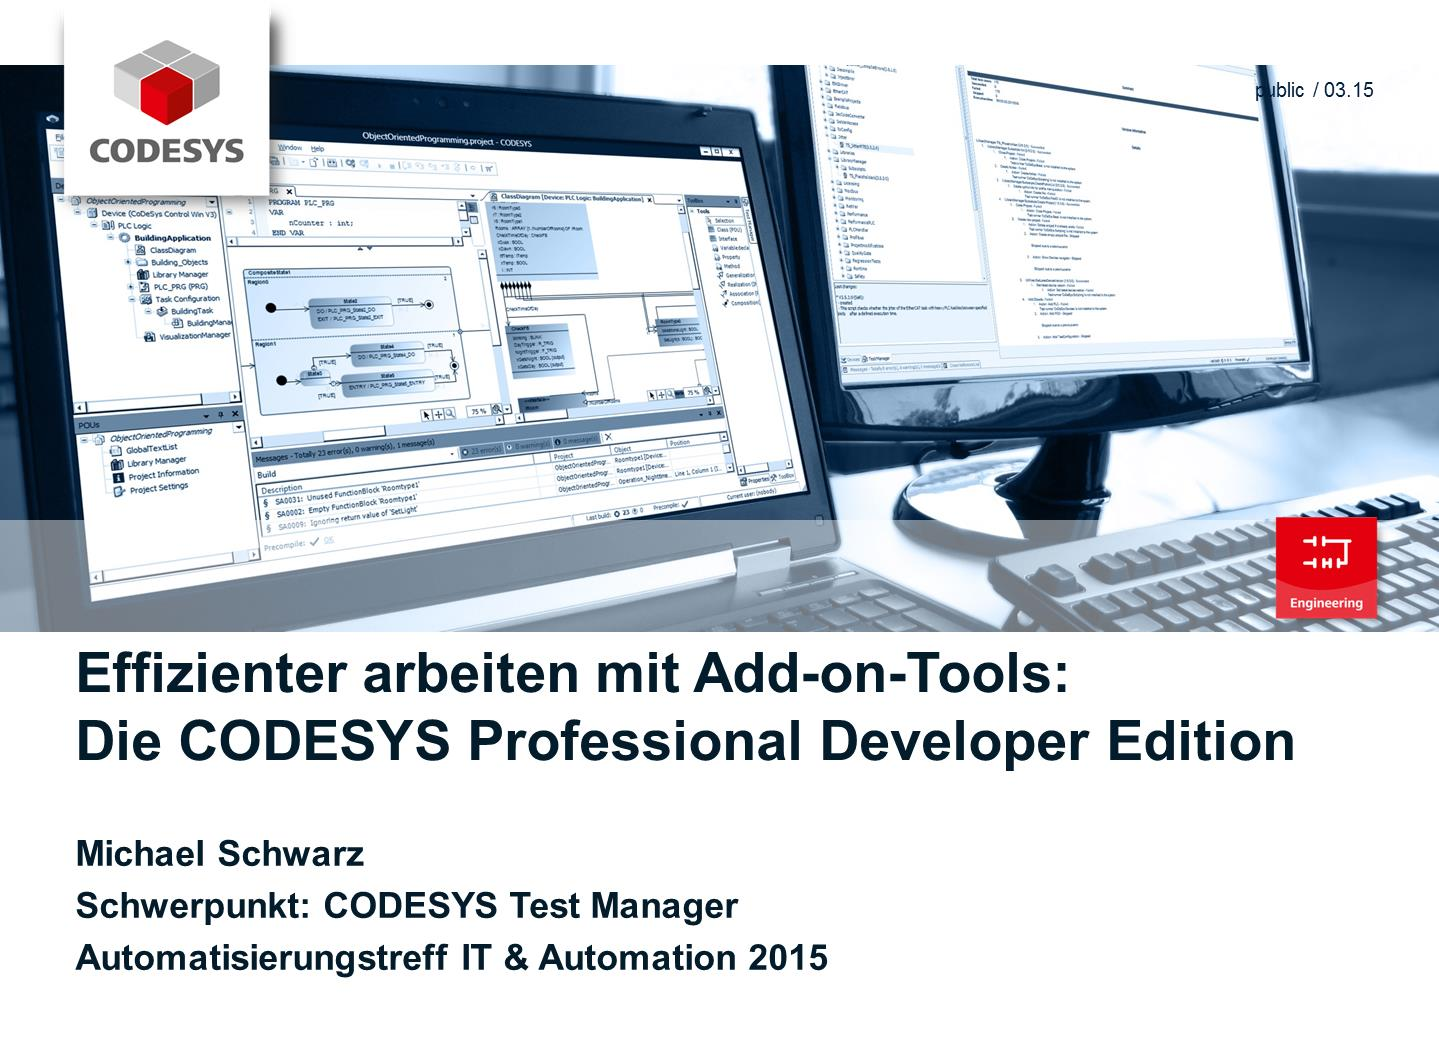 arbeiten mit Add-on-Tools: Die CODESYS